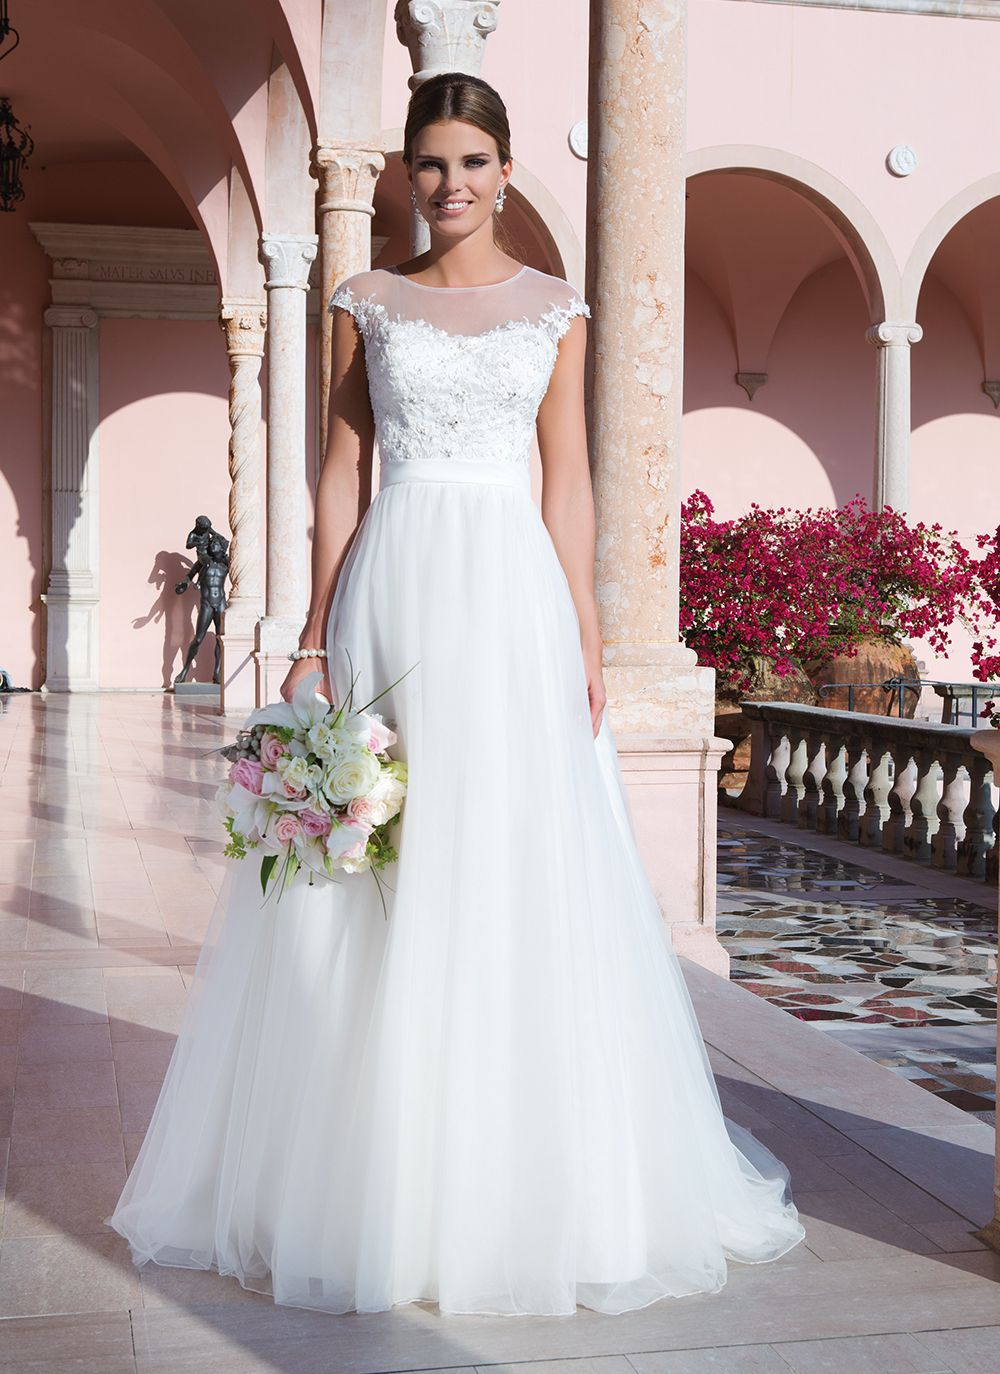 Maternity beach wedding dresses   Sweetheart Gowns sweetheart style  Tulle embroidered lace